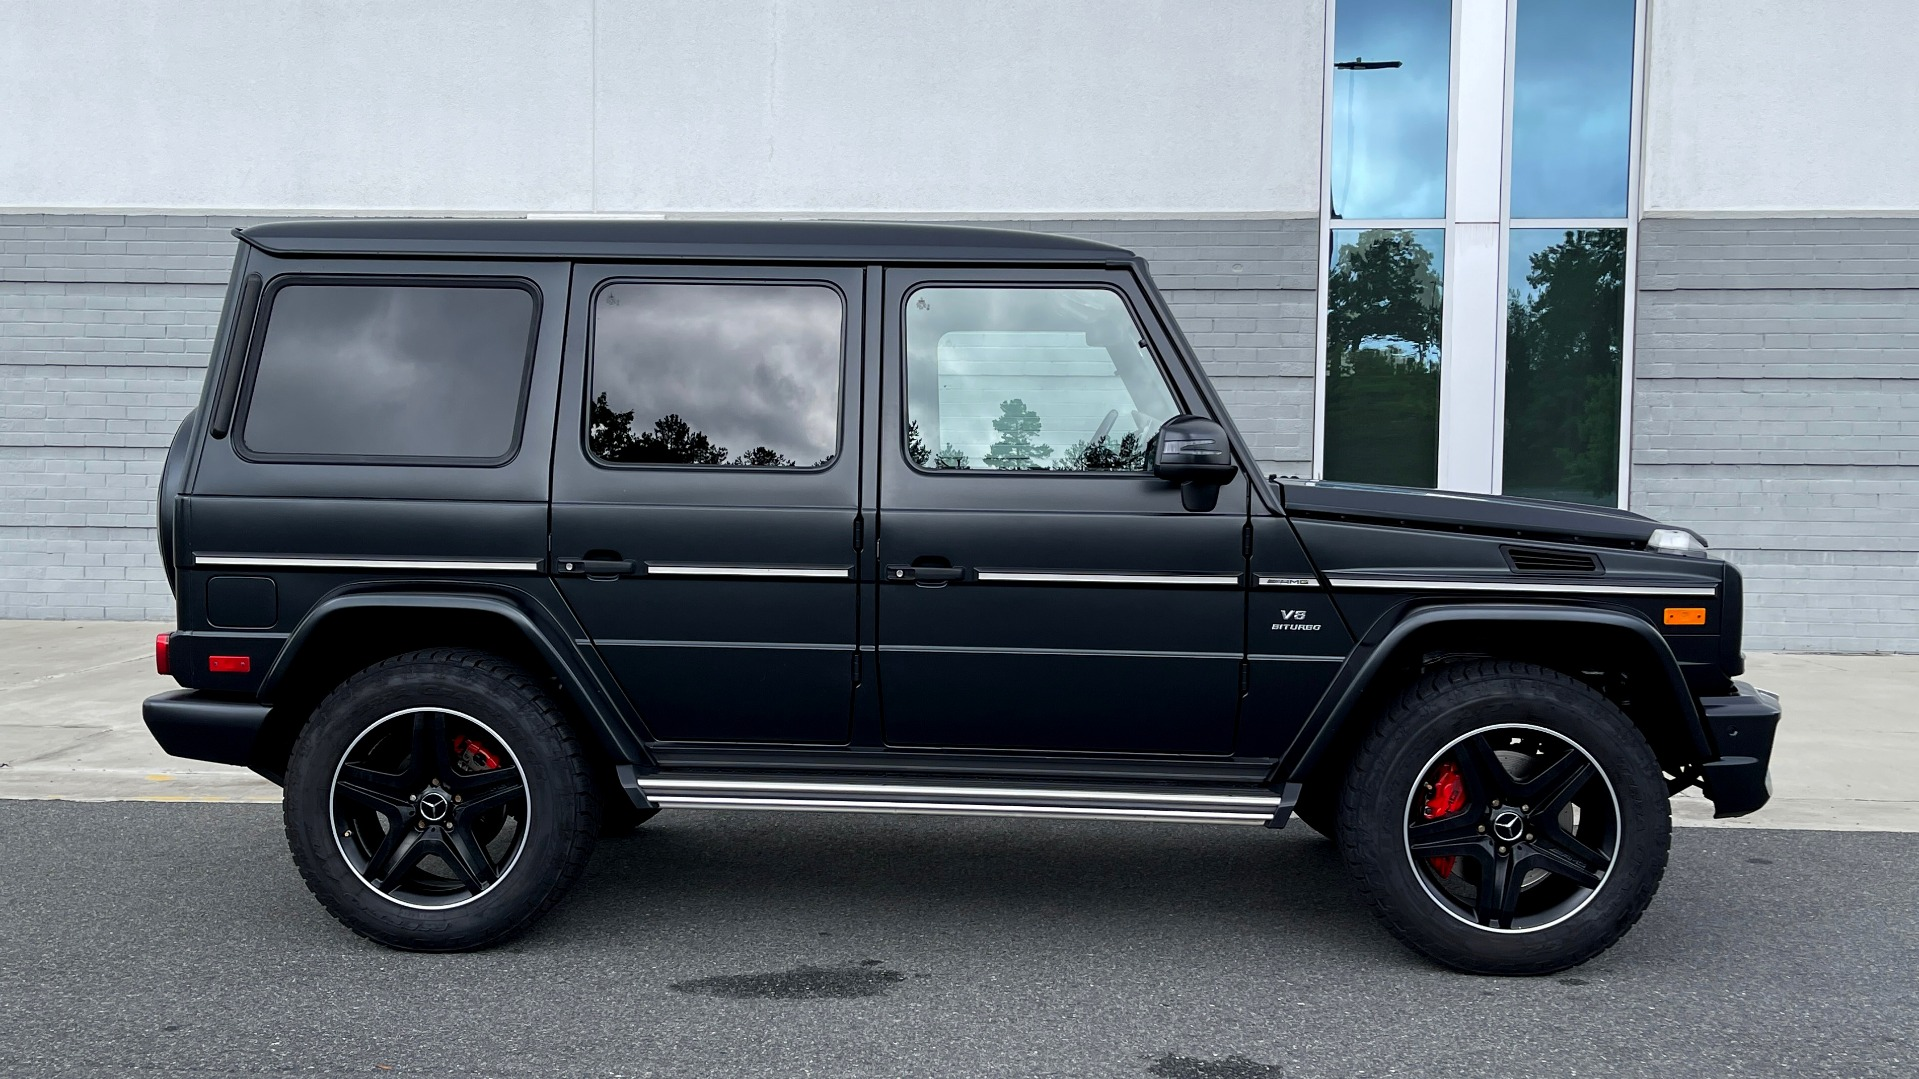 Used 2017 Mercedes-Benz G-CLASS AMG G 63 / DESIGNO PKG / NAV / SUNROOF / H/K SND / REARVIEW for sale $124,999 at Formula Imports in Charlotte NC 28227 8